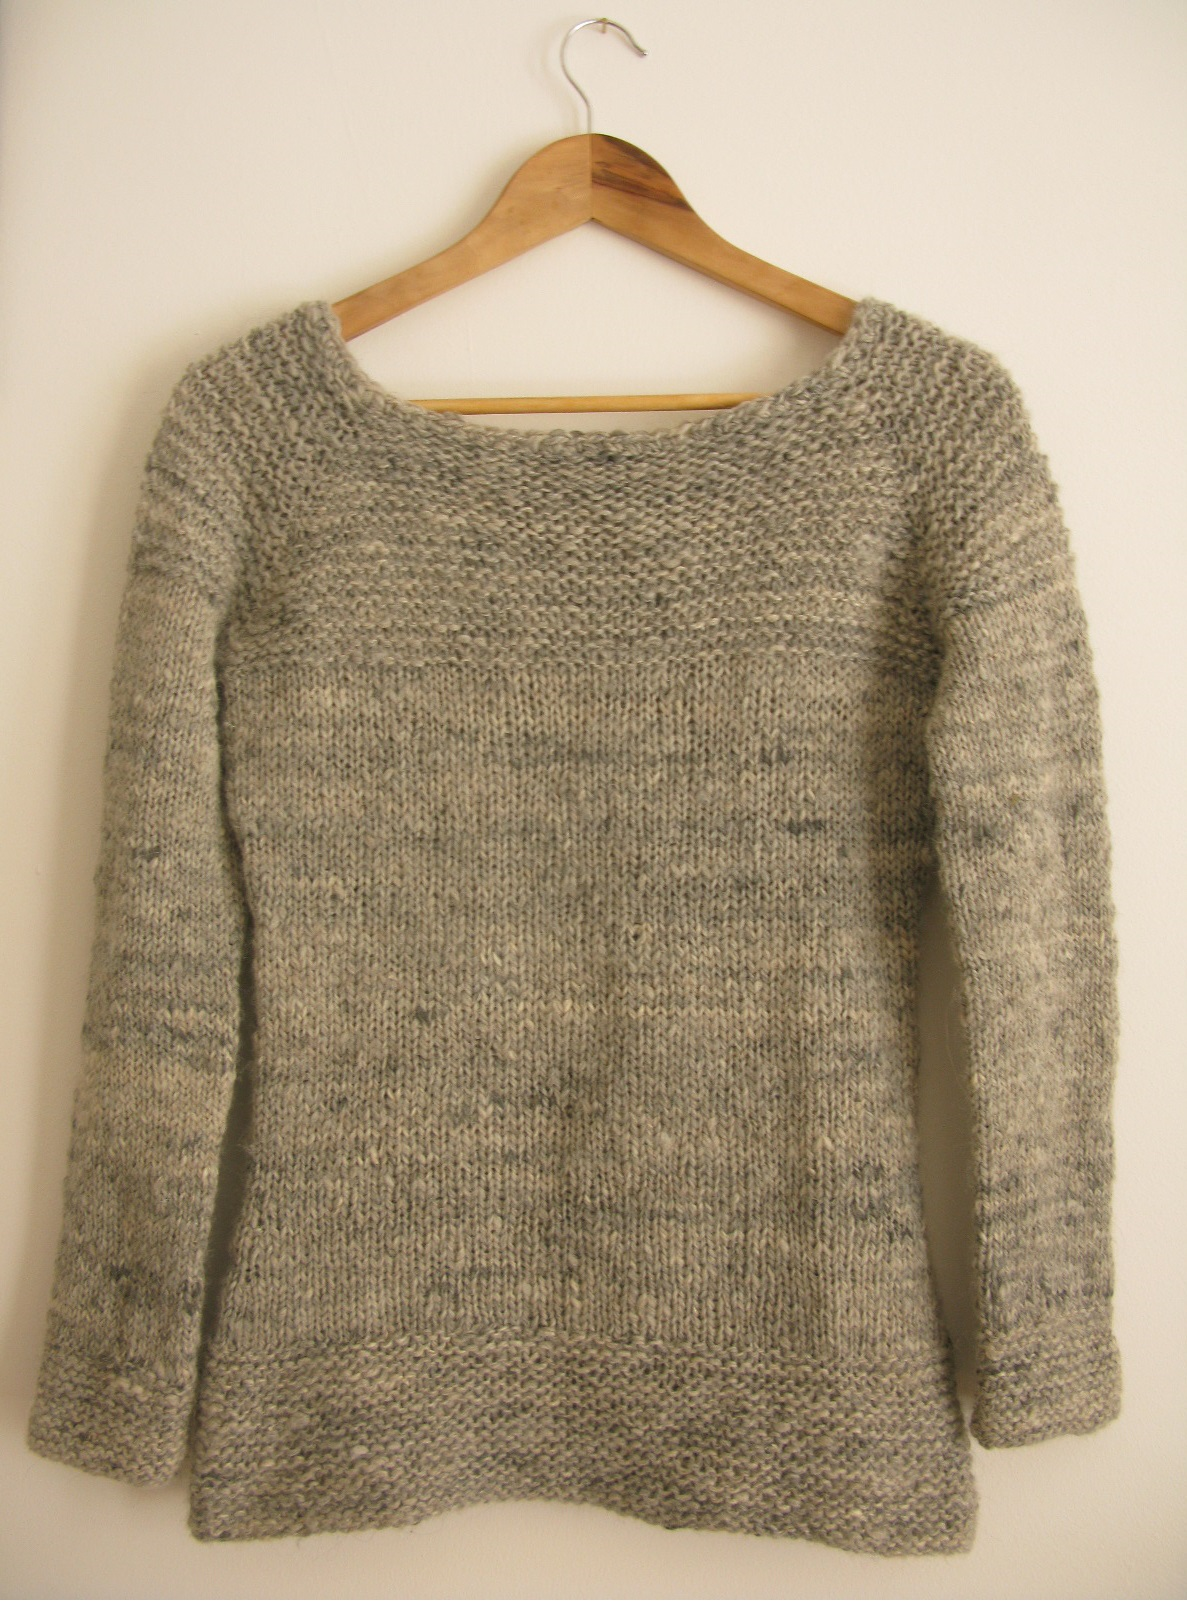 Knitting Sweater For Beginners : Knit sweater bronze cardigan